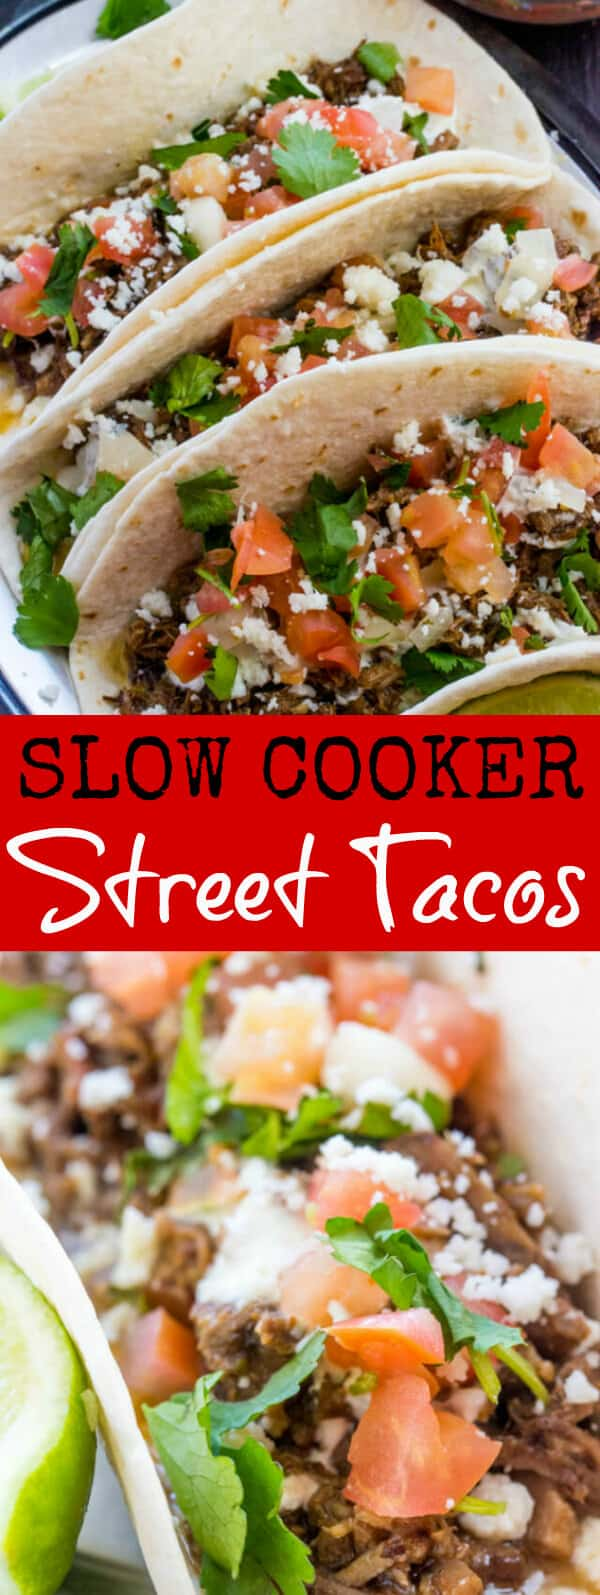 Slow cooked and full of spicy and citrus flavor these Slow Cooker Street Tacos are an easy and tasty Mexican dish that is fix it and forget it! #tacos #slowcooker #crockpot #mexican #recipe